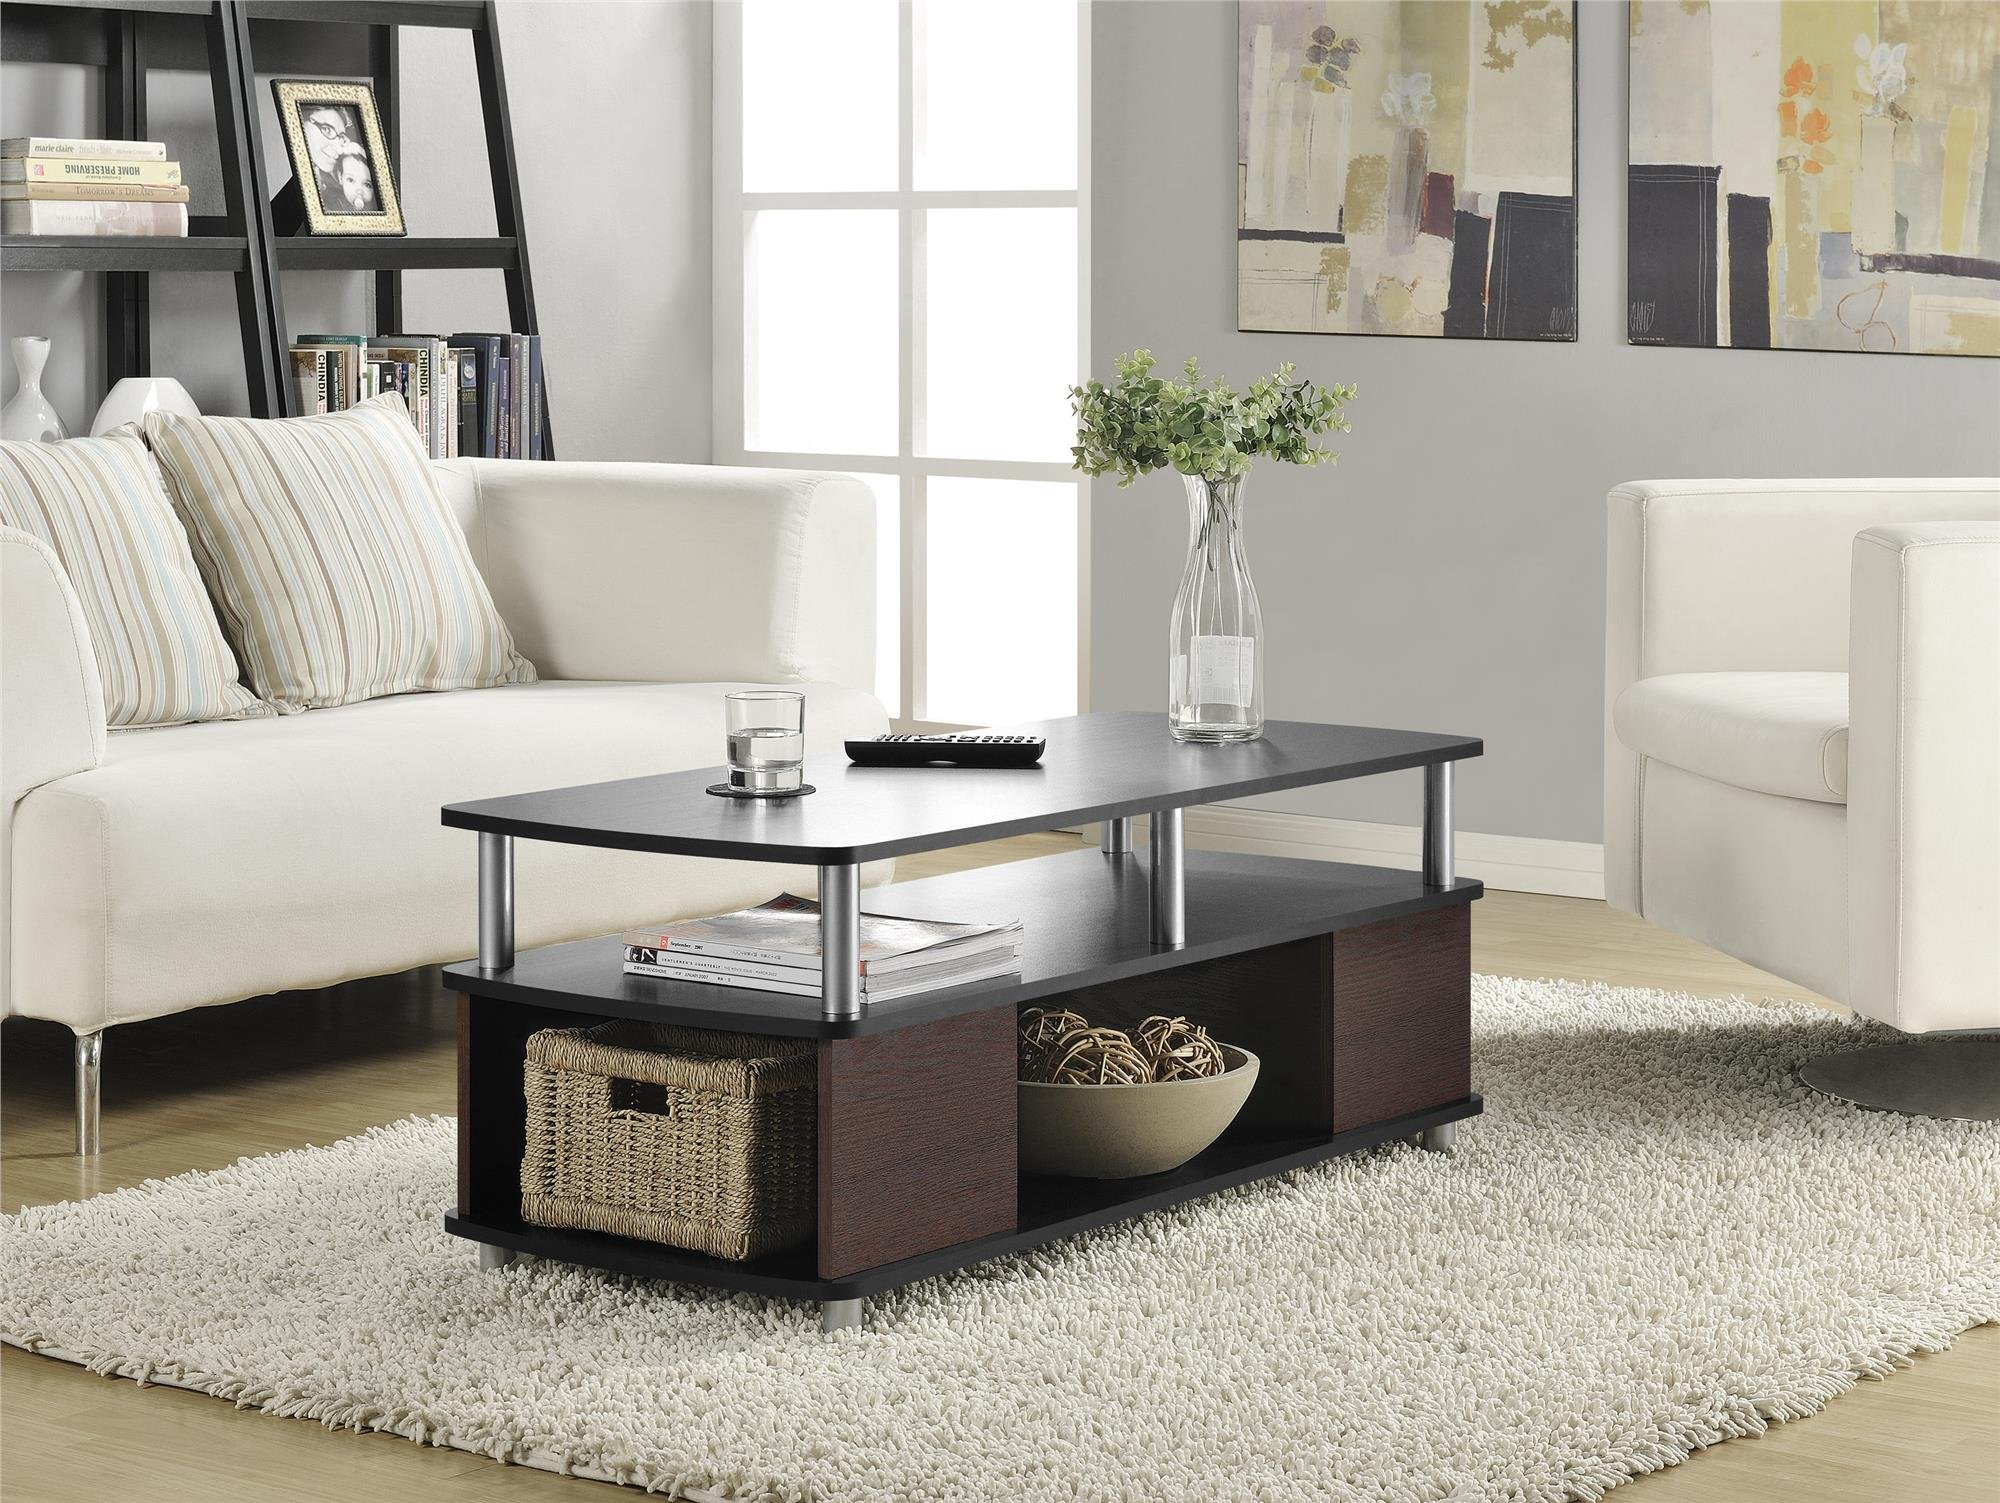 Ameriwood Home Carson Coffee Table, Cherry by Ameriwood Home